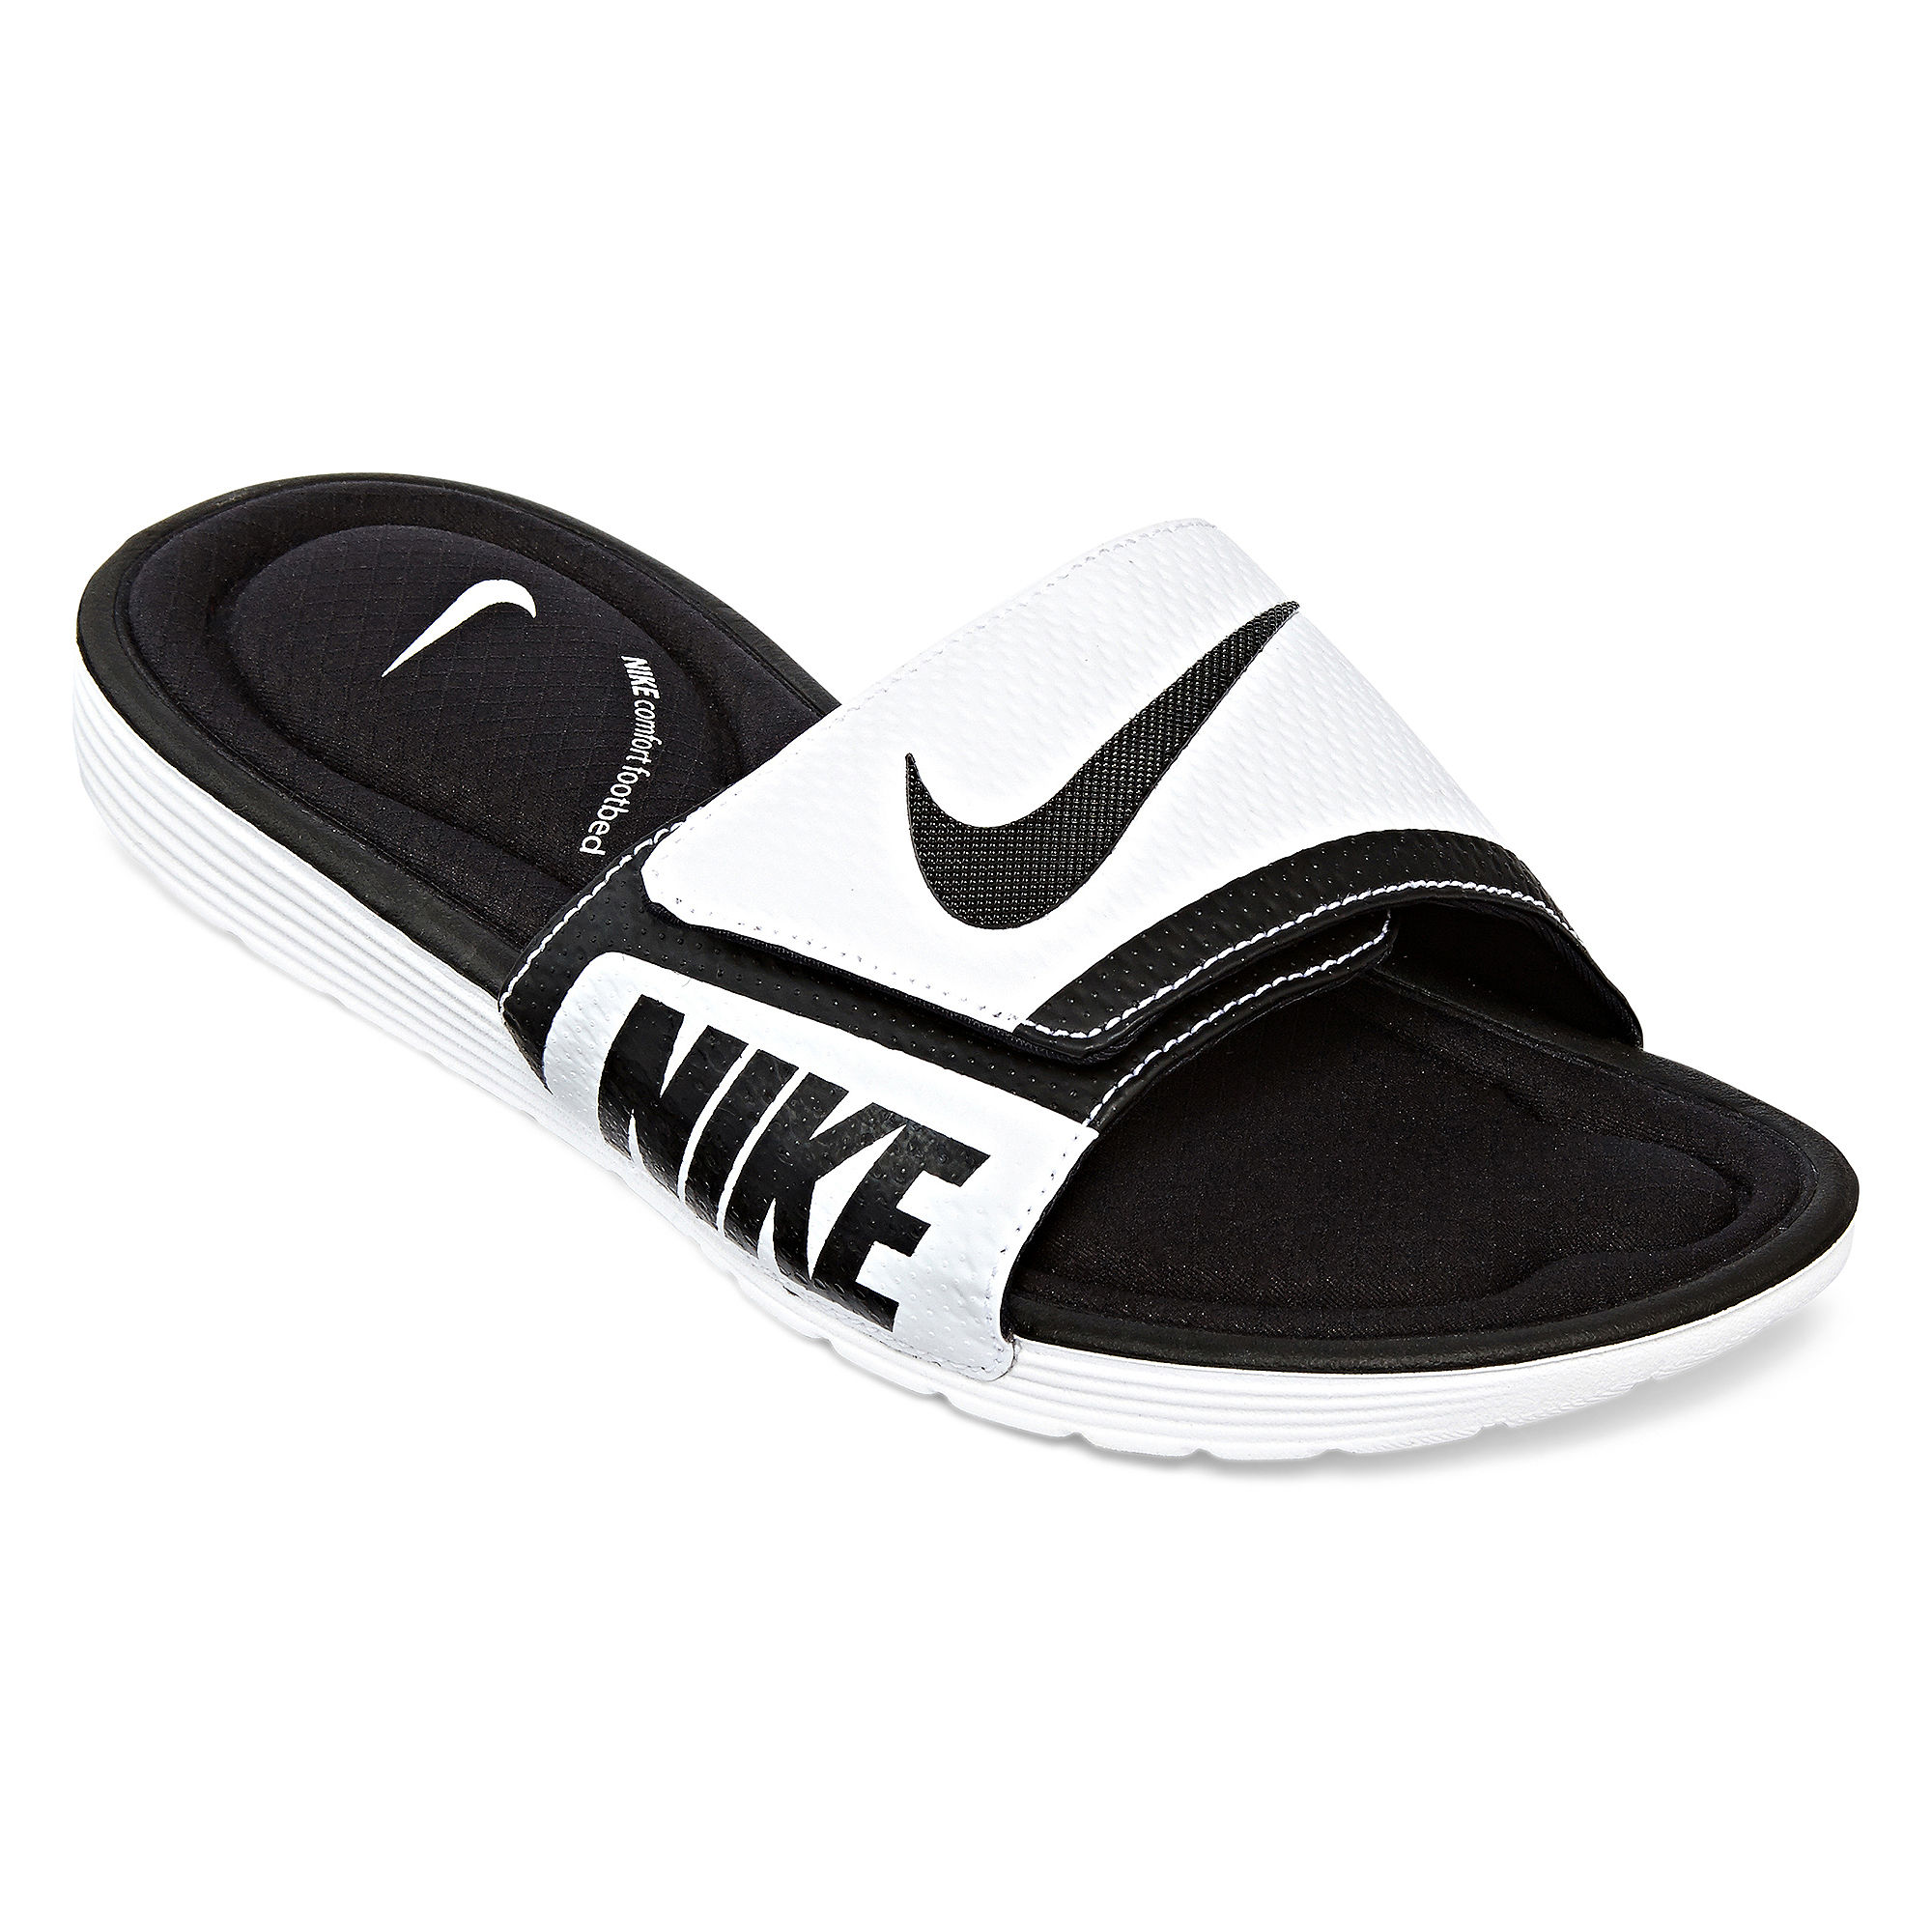 c95898124a7277 ... UPC 888408314901 product image for Nike Solarsoft Mens Comfort Slide  Sandals